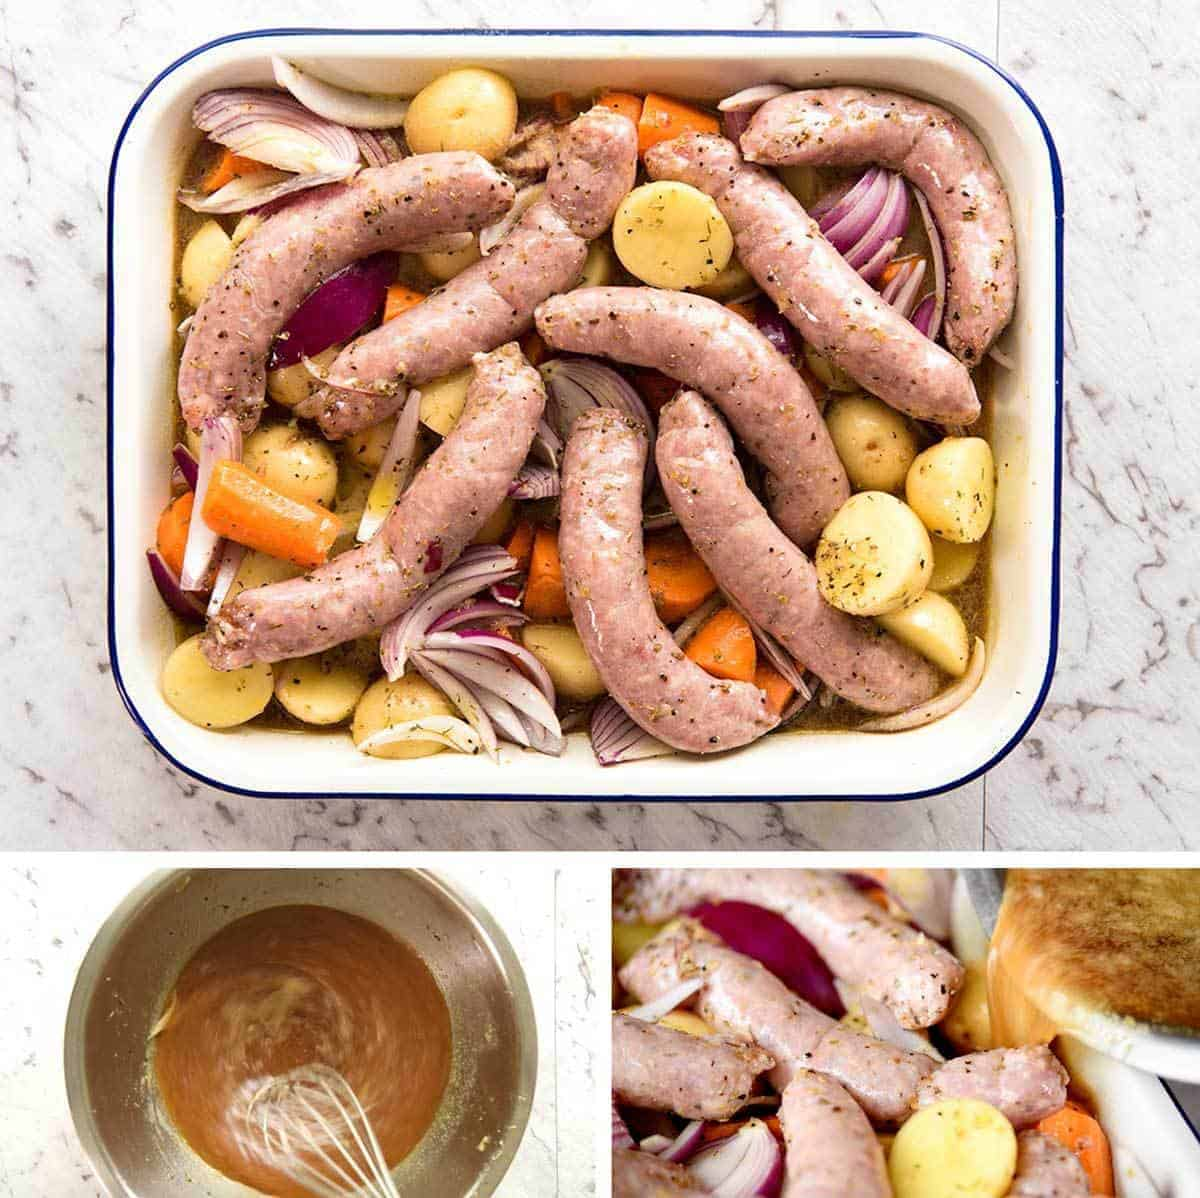 How to make Sausage Bake with Vegetables and Gravy